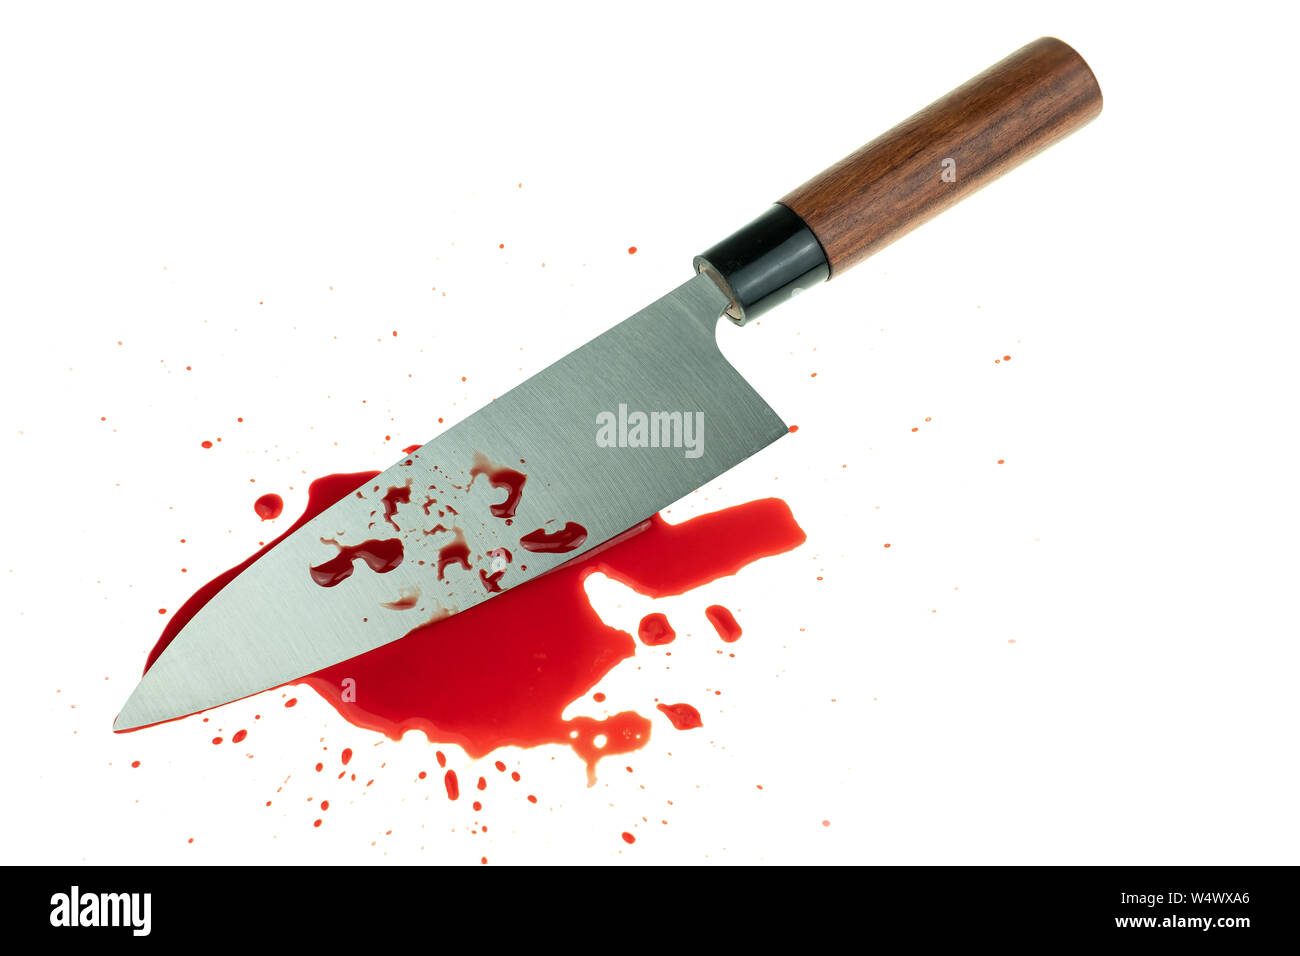 High contrast image knife bloody on white background Stock Photo